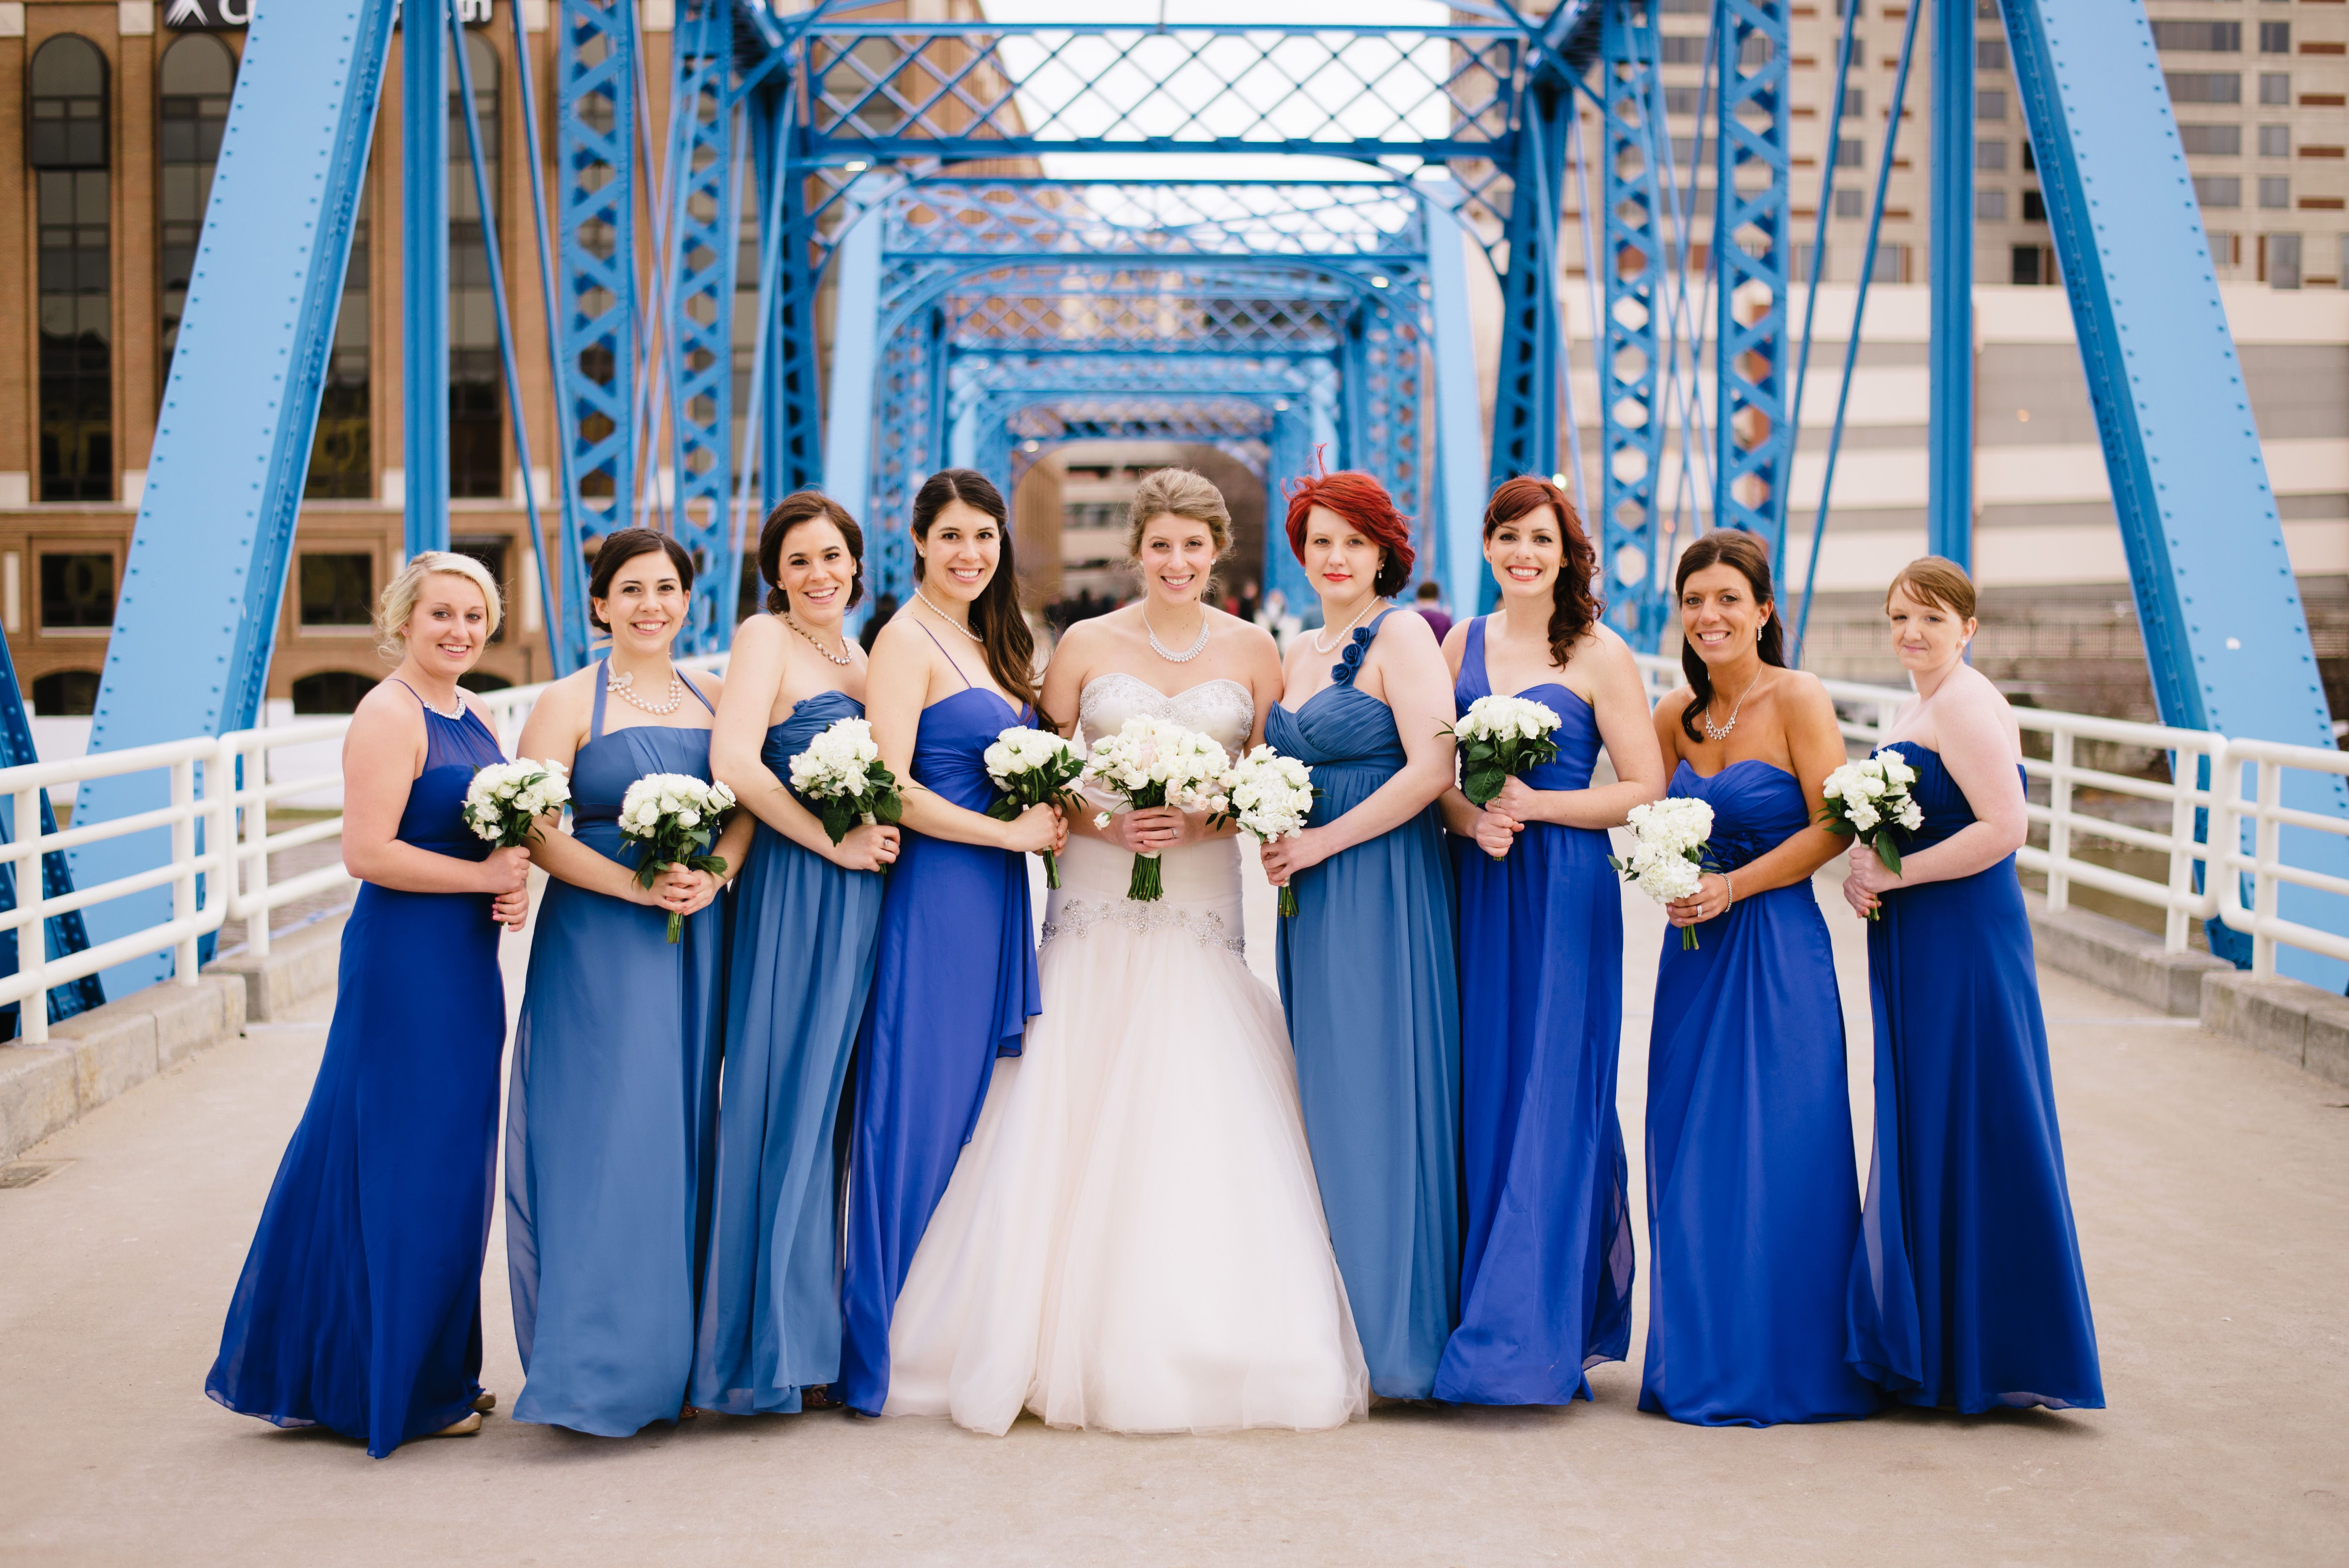 Alfred angelo chiffon bridesmaids dresses in mediterranean indigo alfred angelo chiffon bridesmaids dresses in mediterranean indigo and cobalt santiago murillo photography ombrellifo Gallery